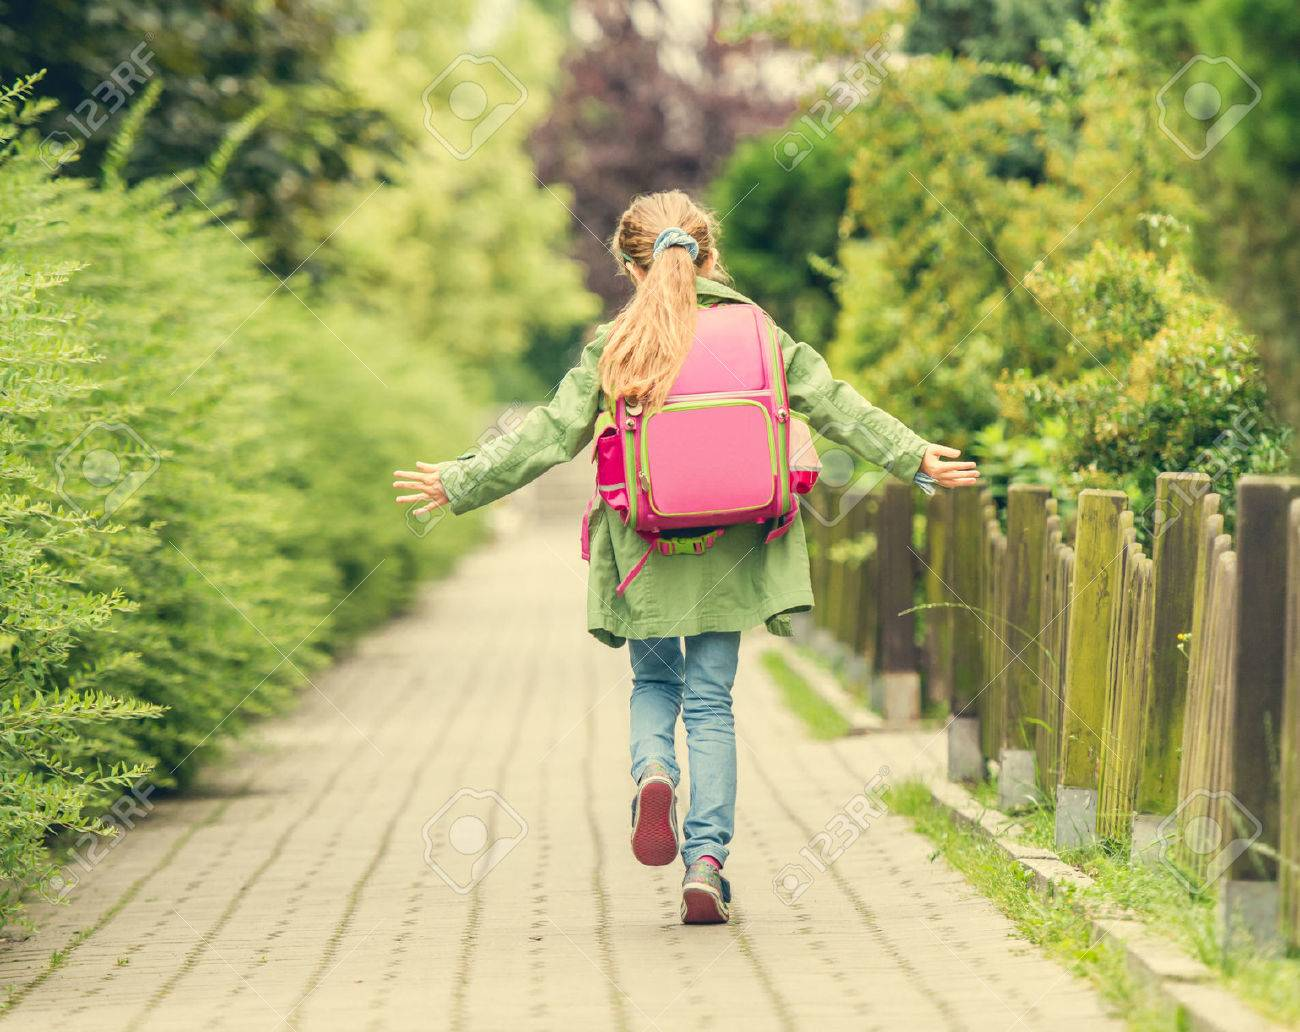 little girl with a backpack going to school. back view - 44481580